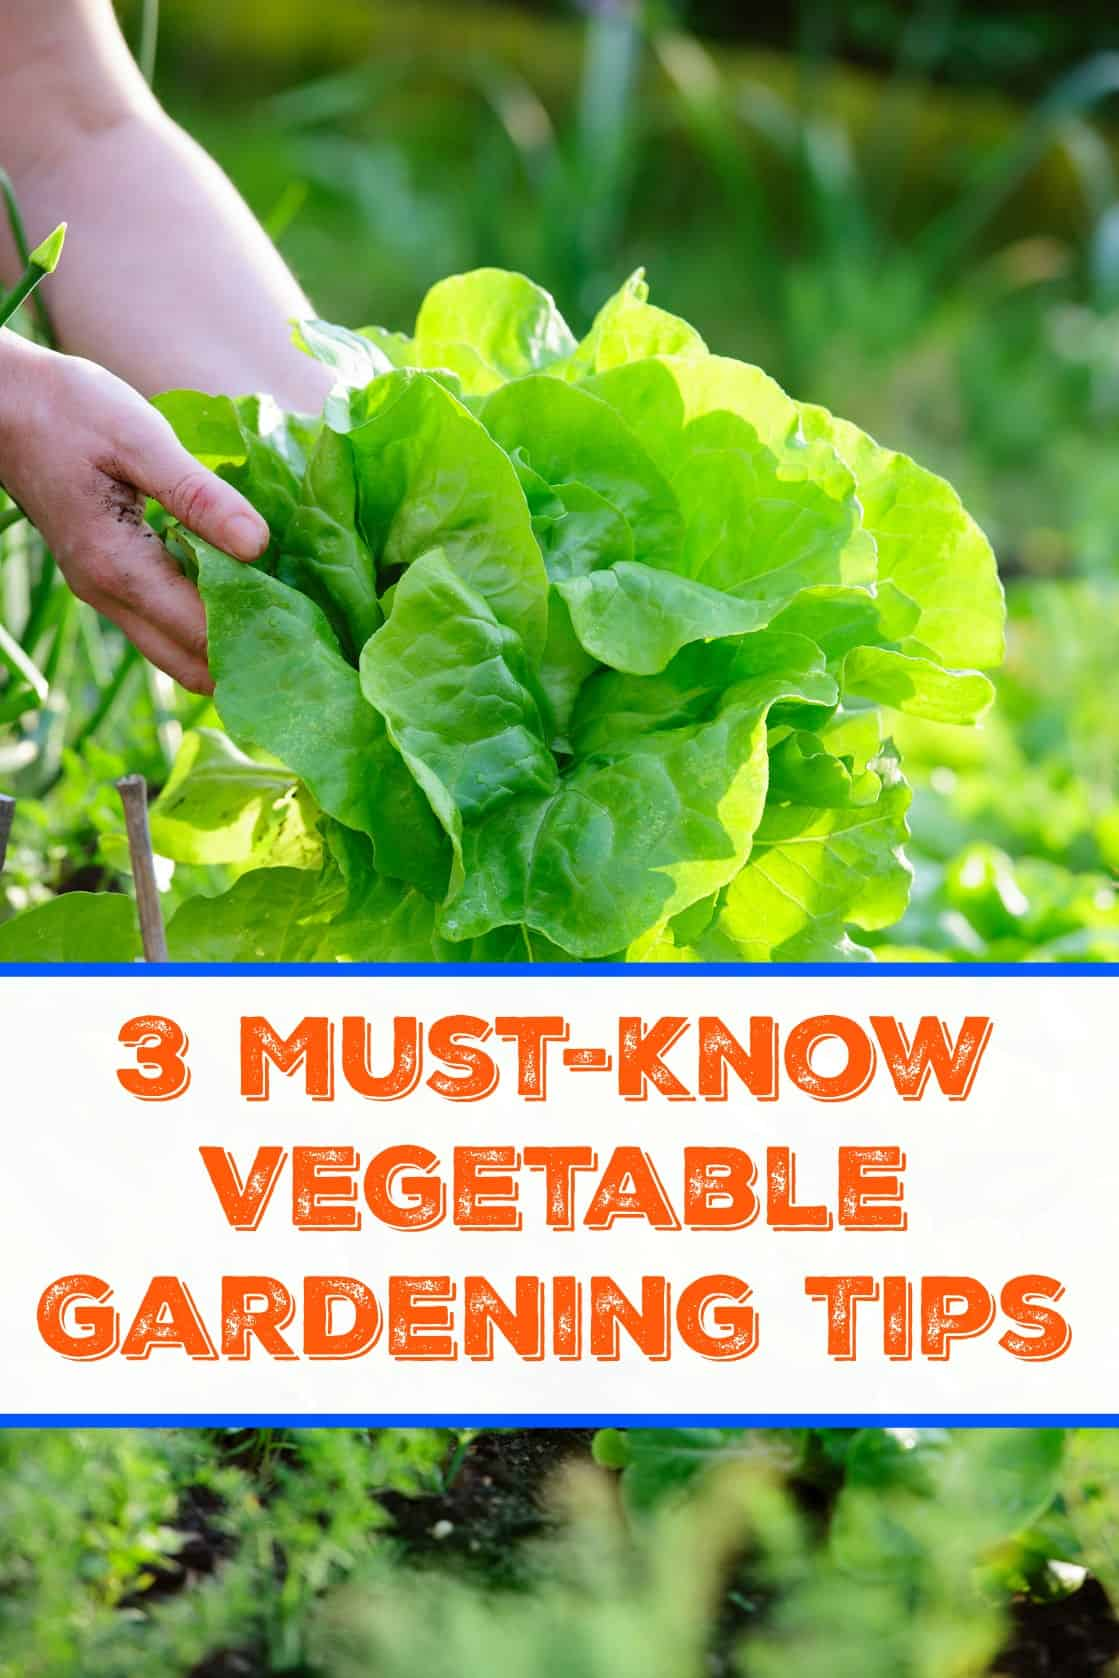 3 Must Know Veggie Garden Tips